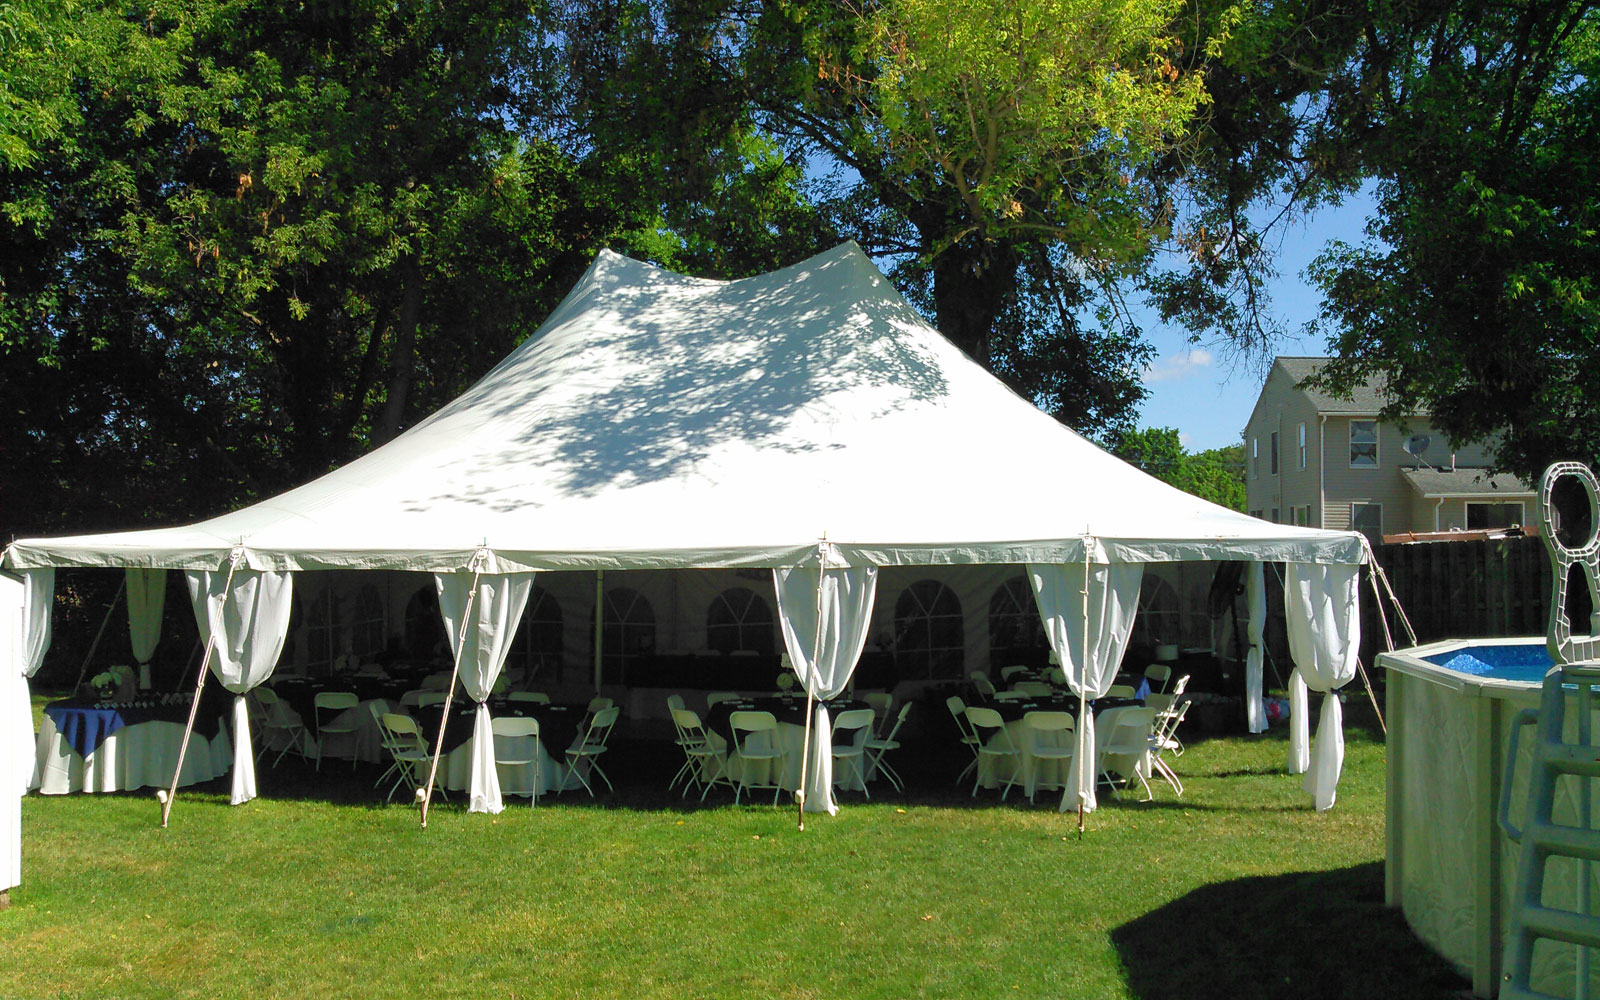 Tent And Chair Rental Cline 39s Tent Rental Inc Cline 39s Tent Rental Inc